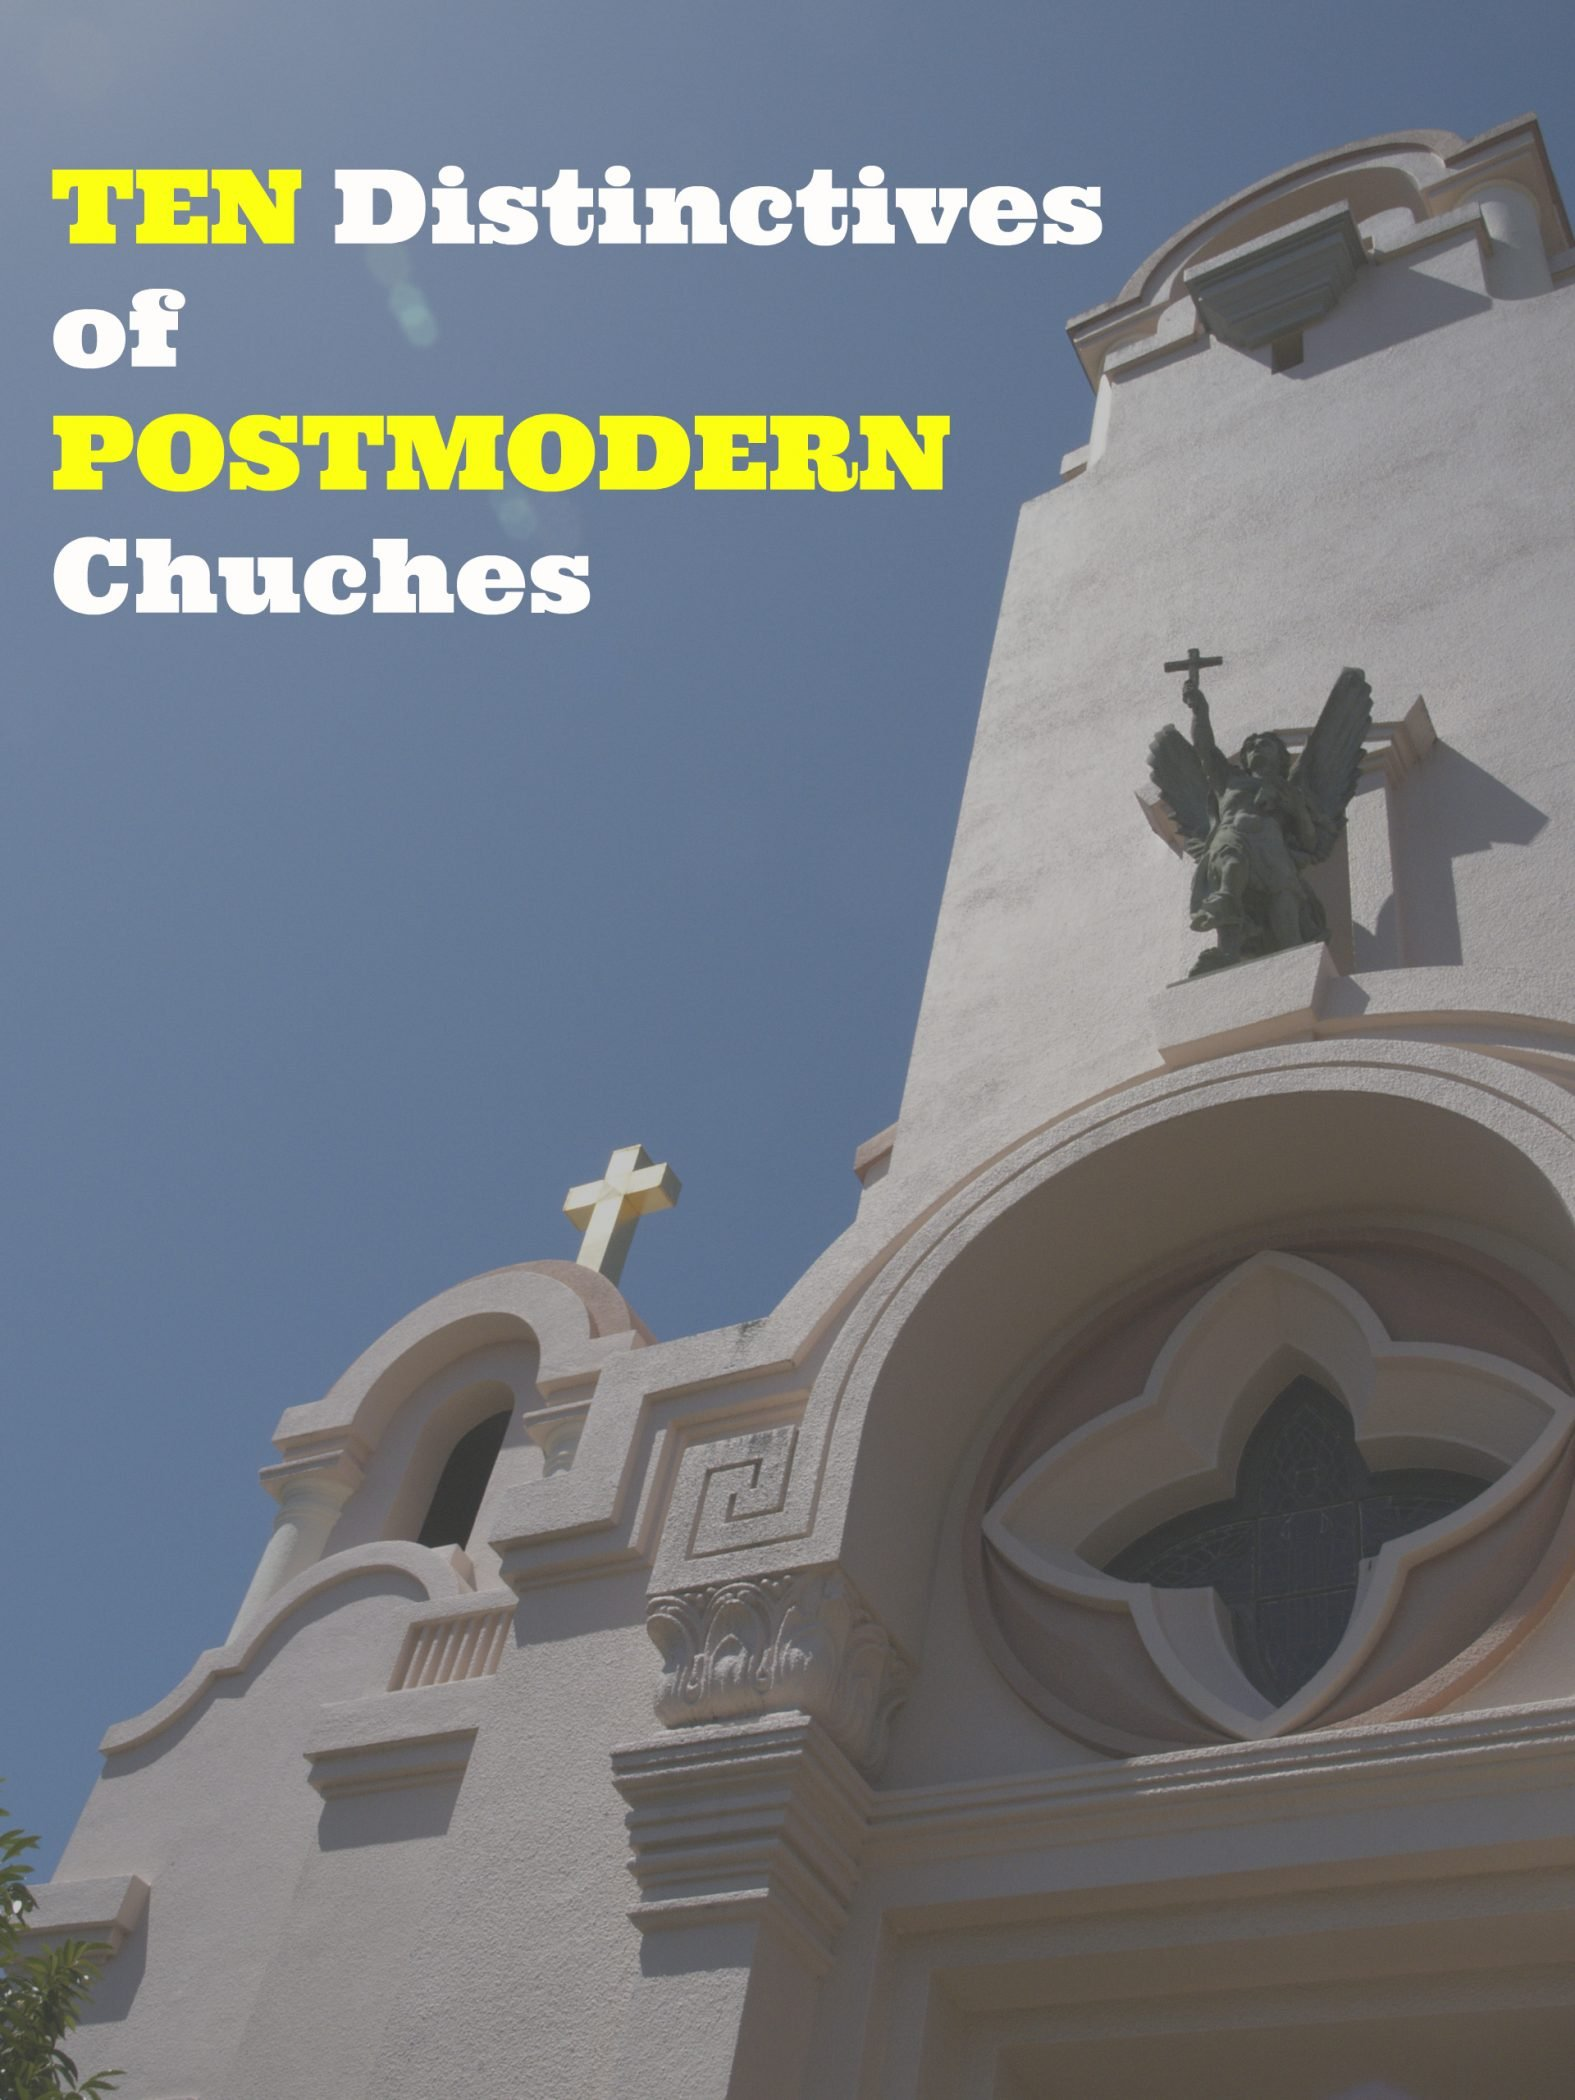 10 Distrinctives Postmodern Churches